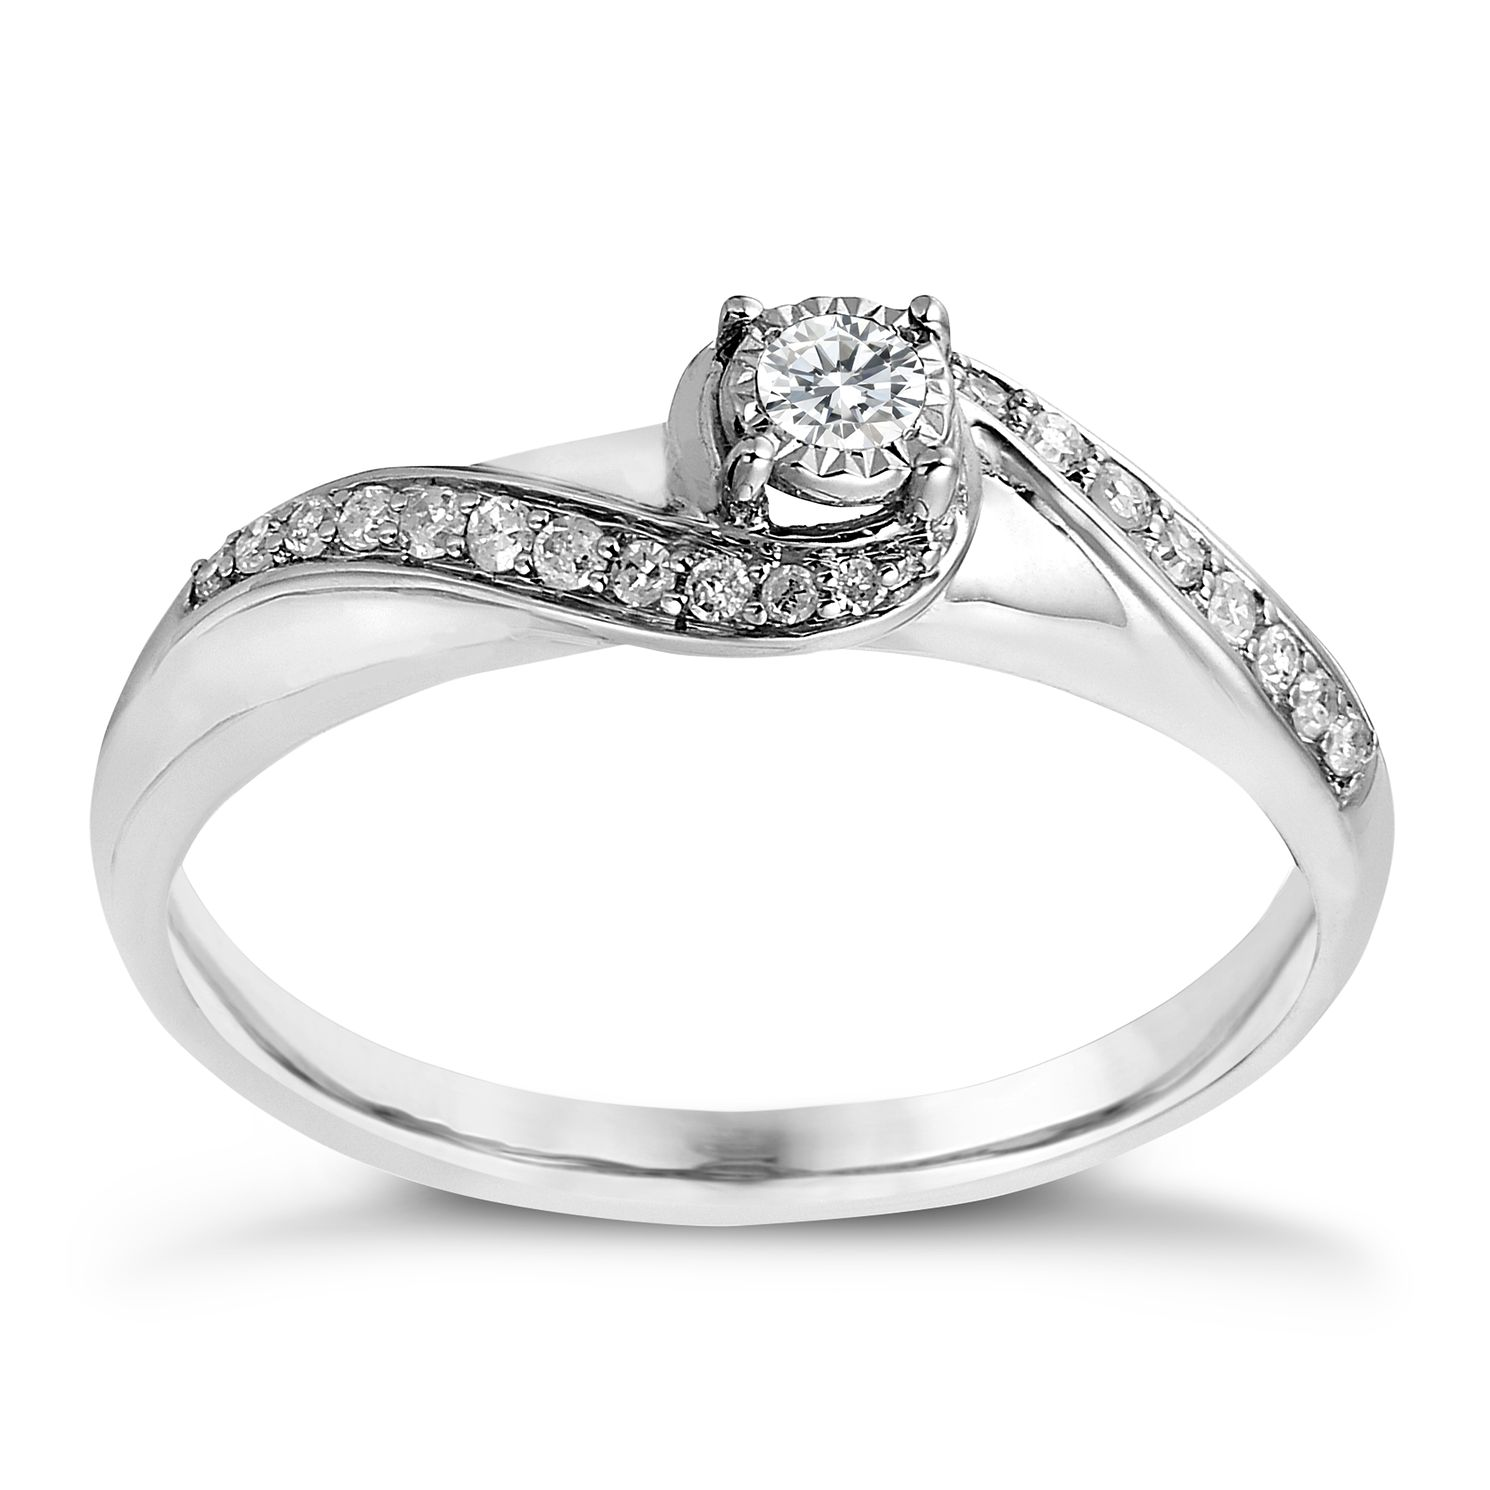 ct serr shape round diamond g rings platinum flat plwhite prongsolitaireengagement brickell cut engagement band goldtriangle product ring solitaire